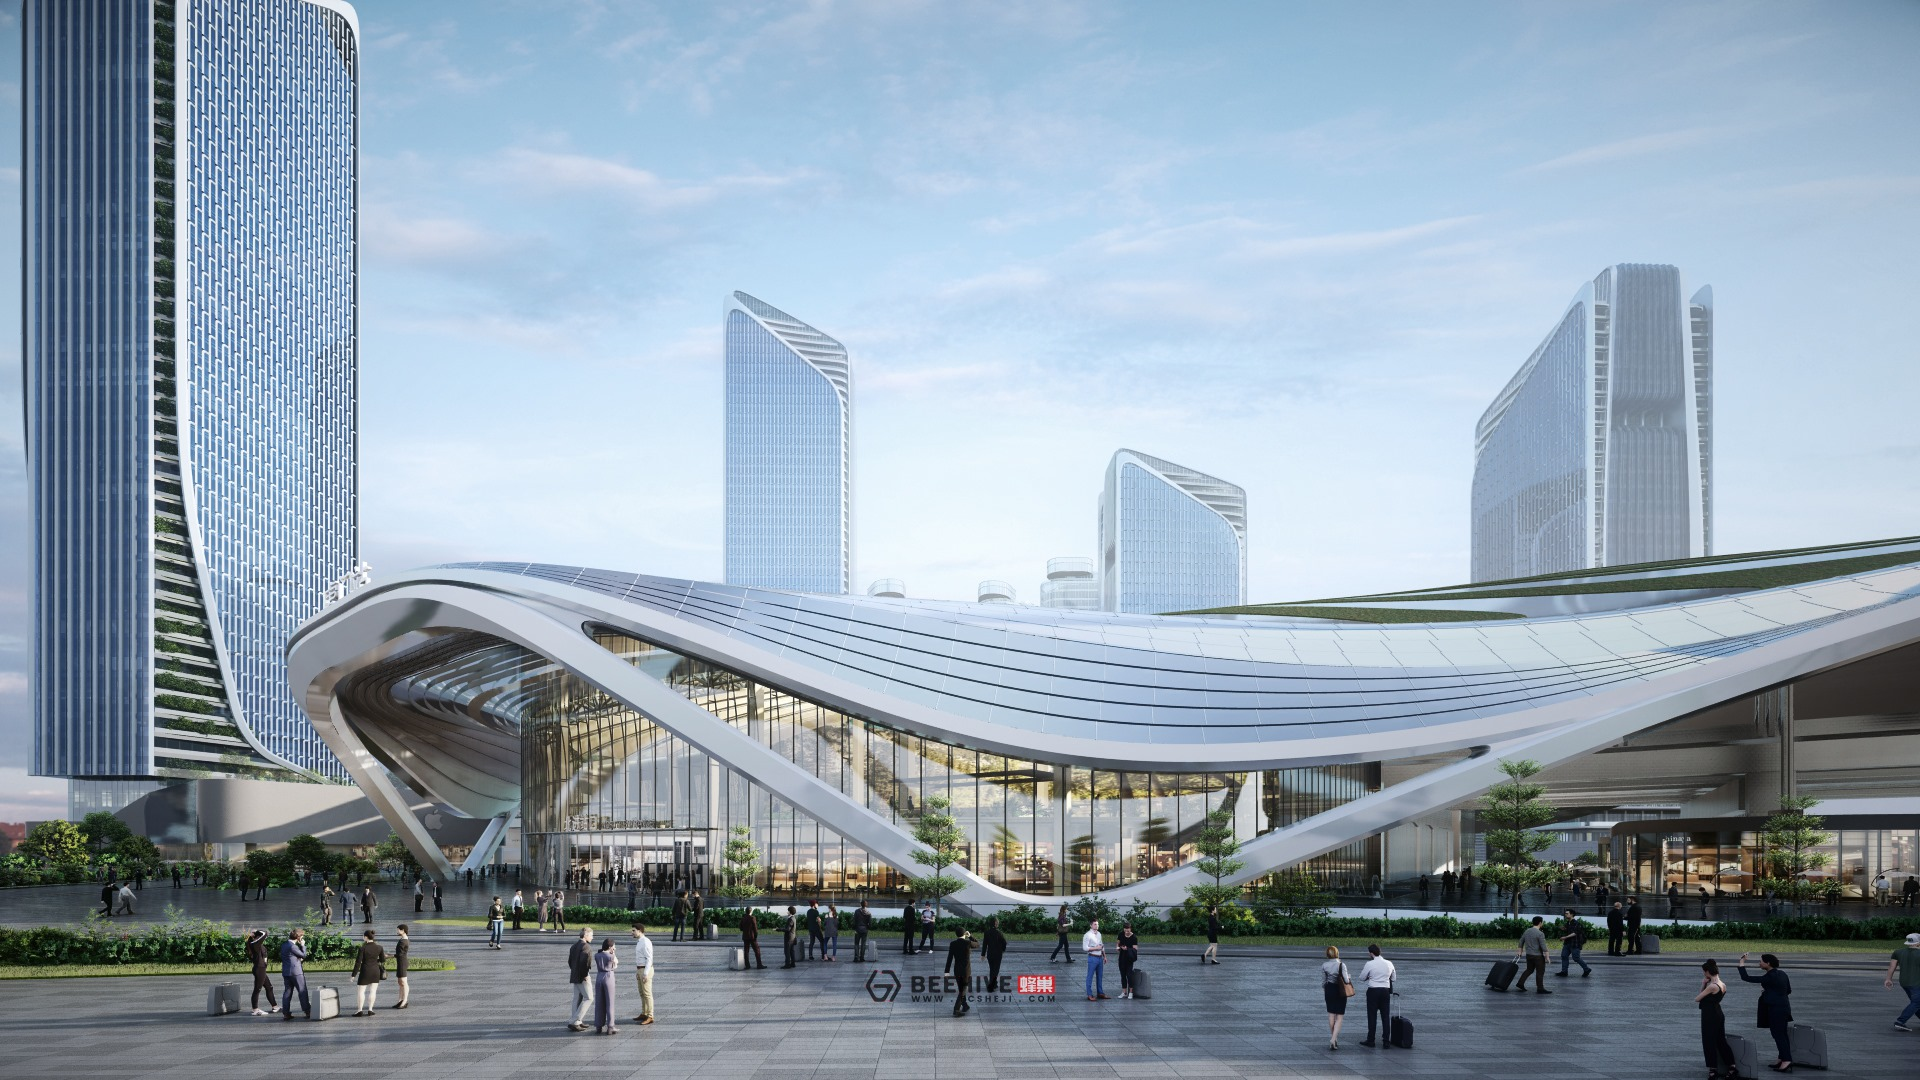 Humen High Speed Rail Station Expansion Project Master Plan, rendered in Lumion 10 by Beehive.